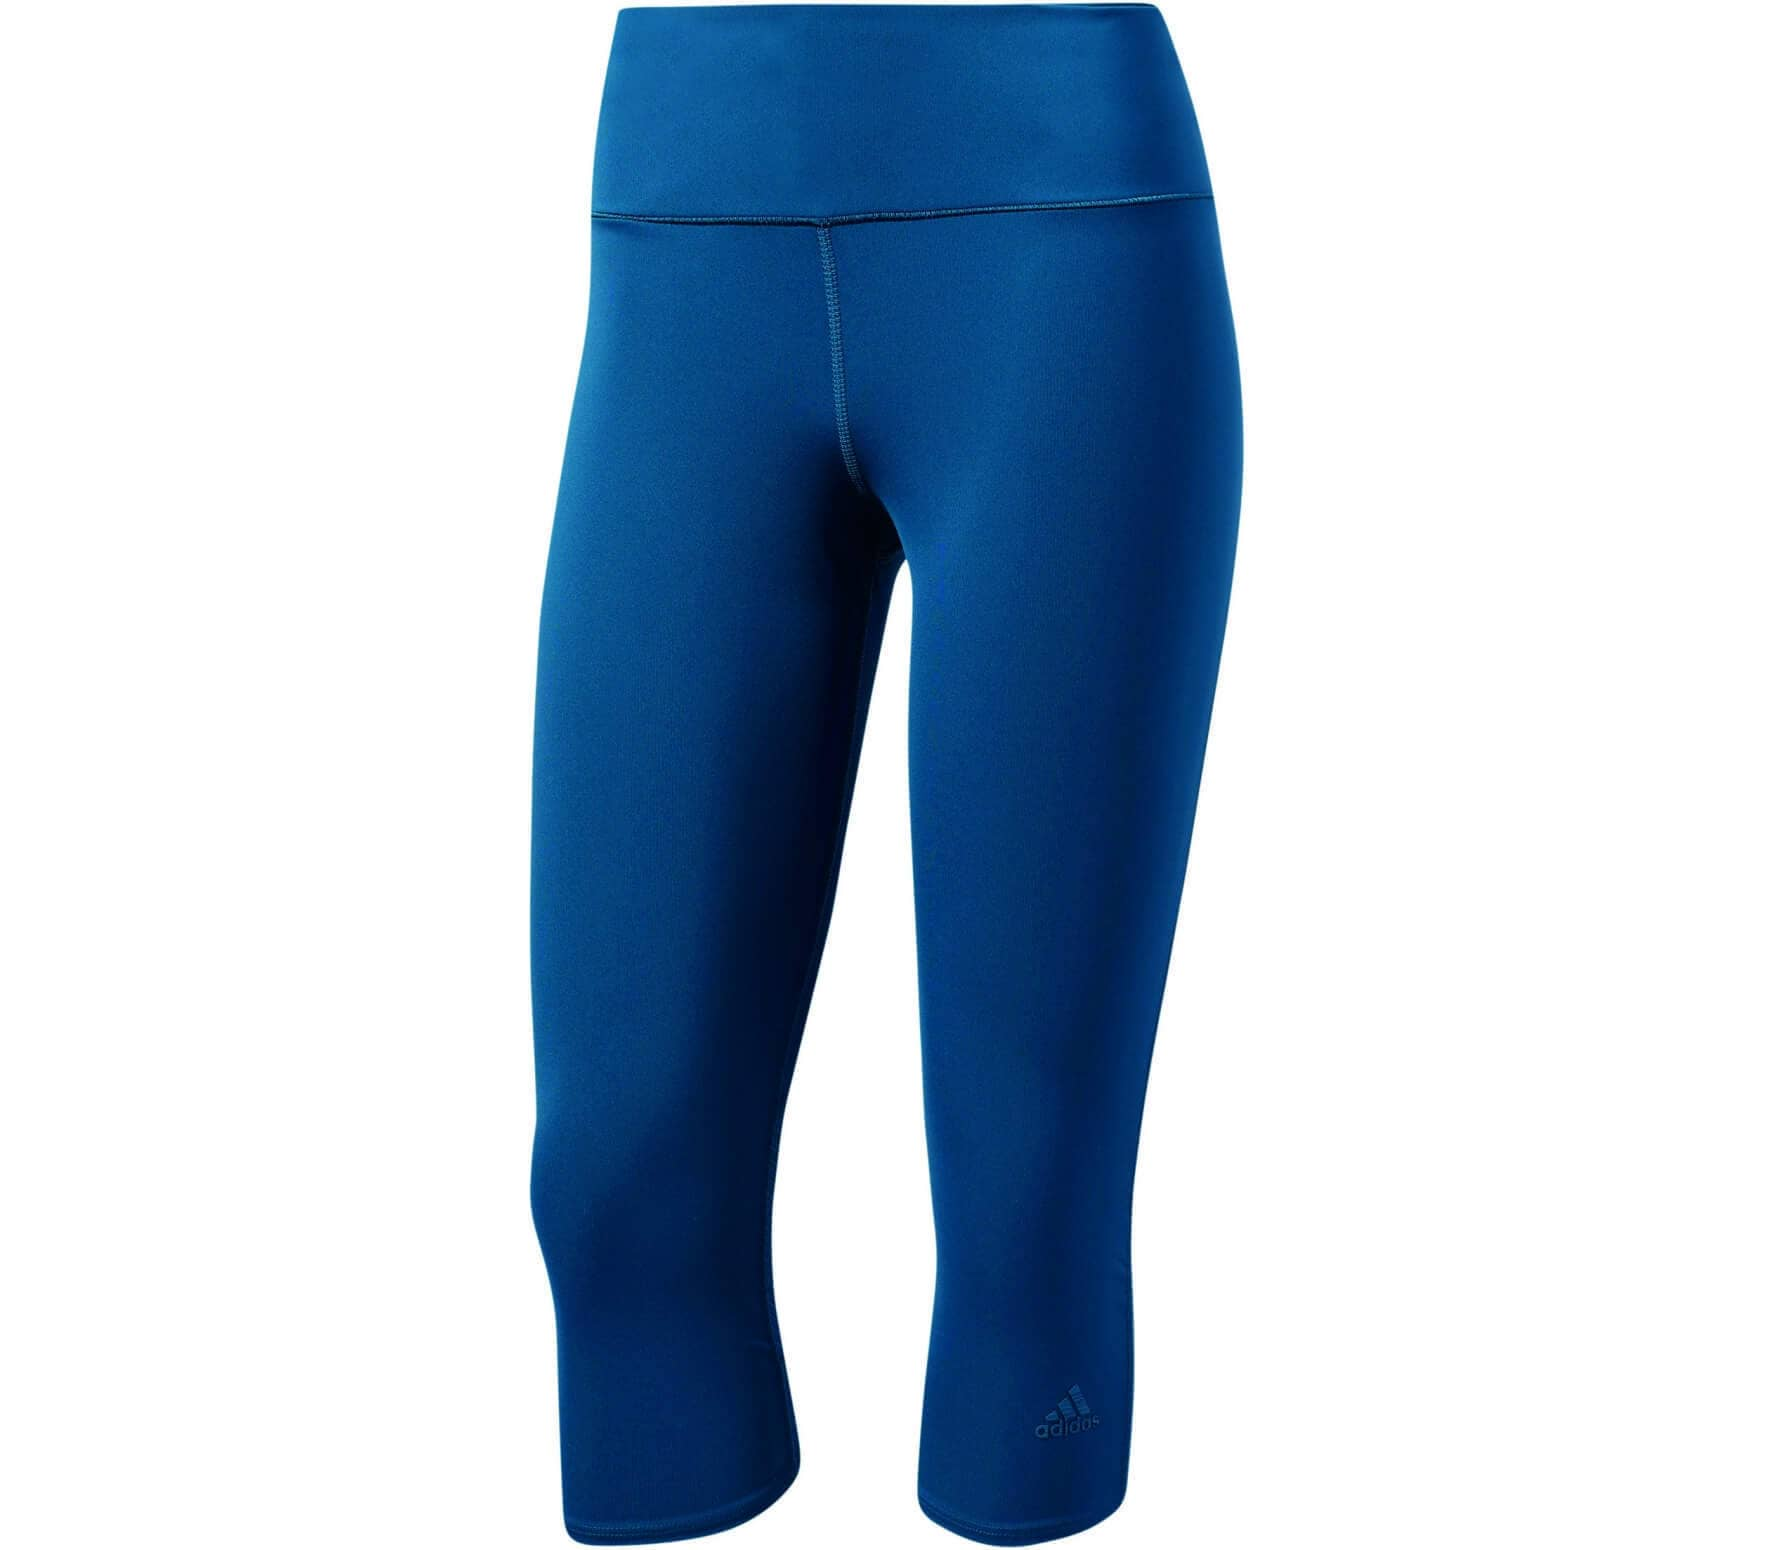 d7e207bed Adidas - Supernova 3 4 women s running pants (blue) - buy it at the ...